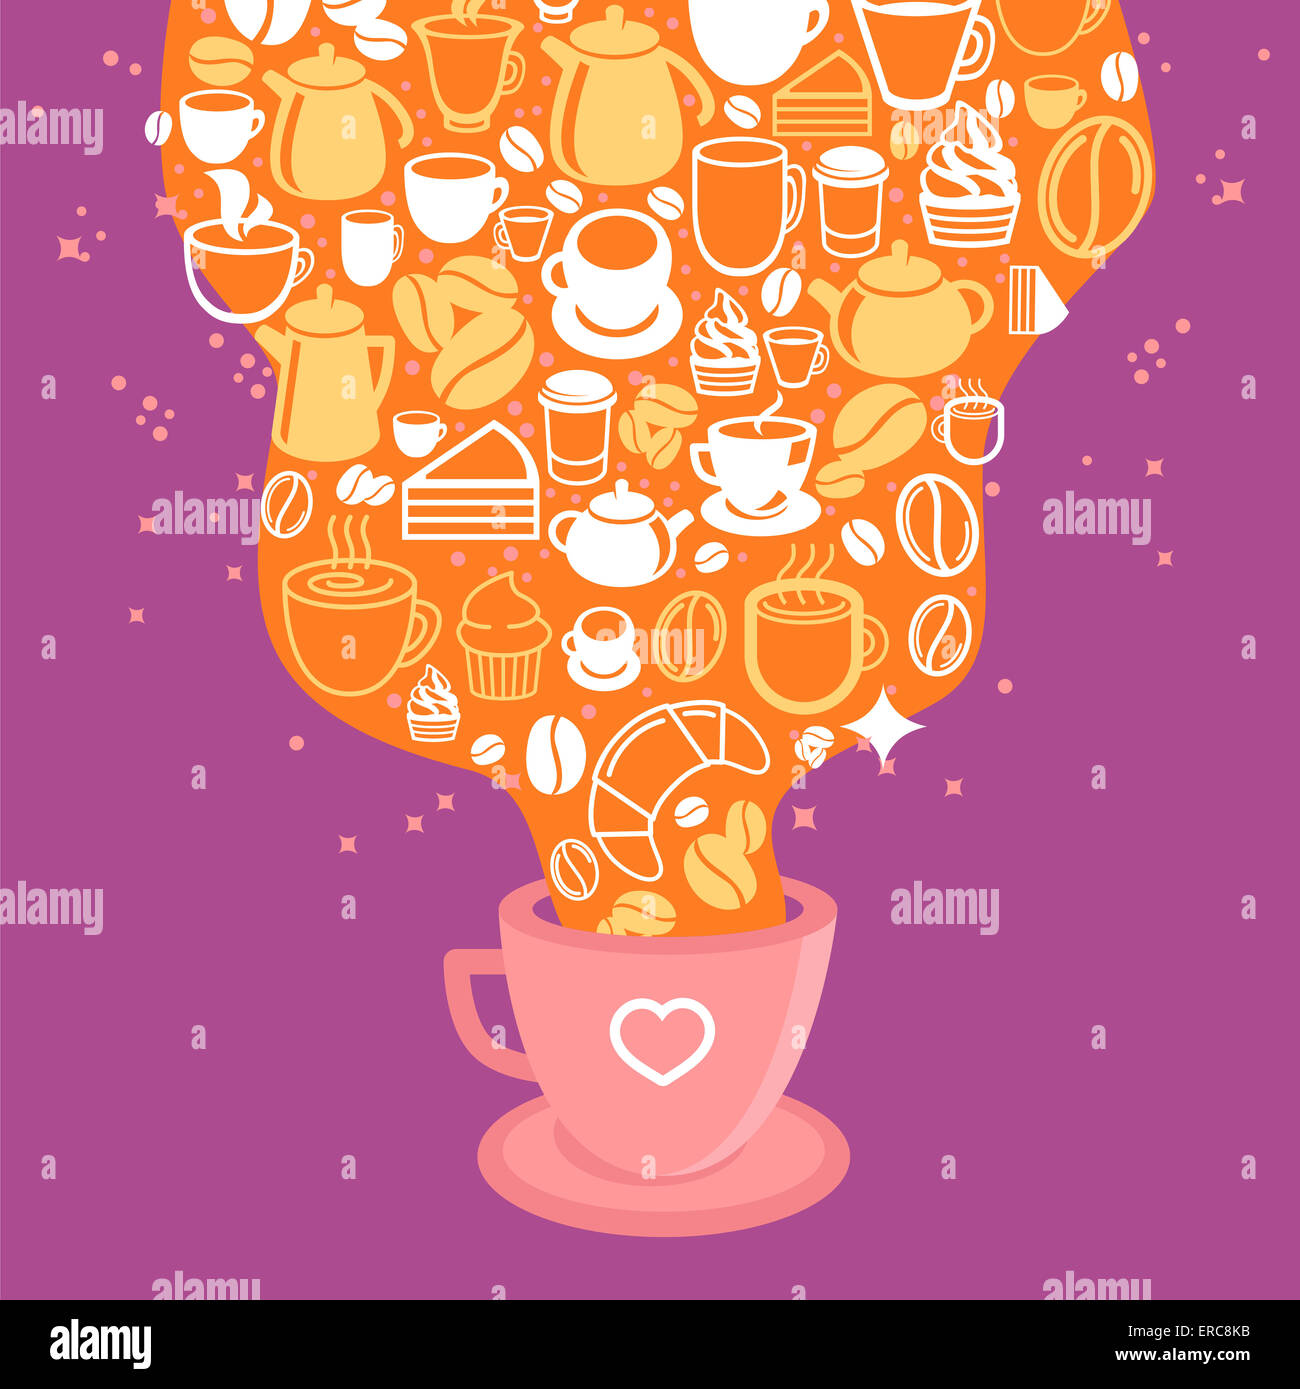 Coffee poster - illustration in flat style with hot cup of coffee - Stock Image